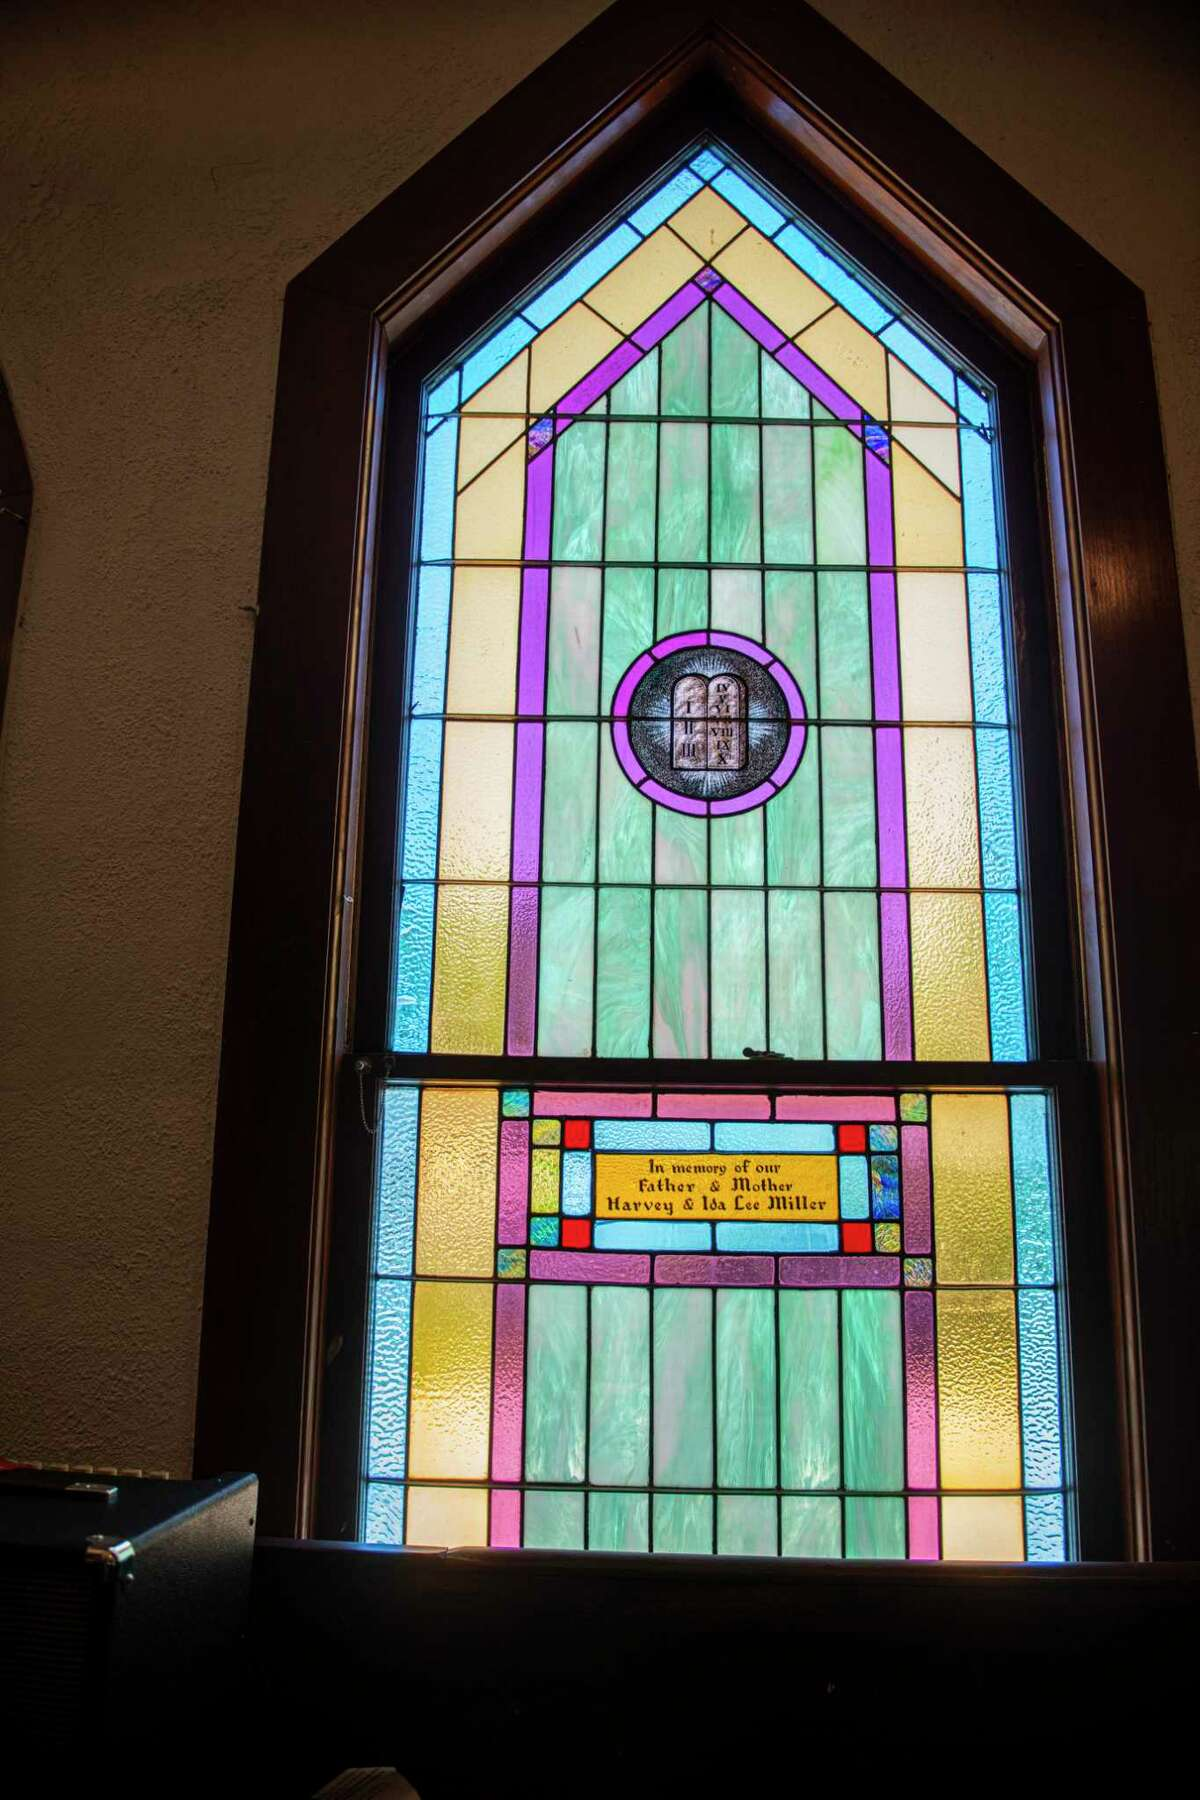 St. James African Methodist Episcopal Church, one of San Antonio's oldest Black churches, has multiple stain glass windows, each one dedicated to congregation members. The church is now located on the near West Side.